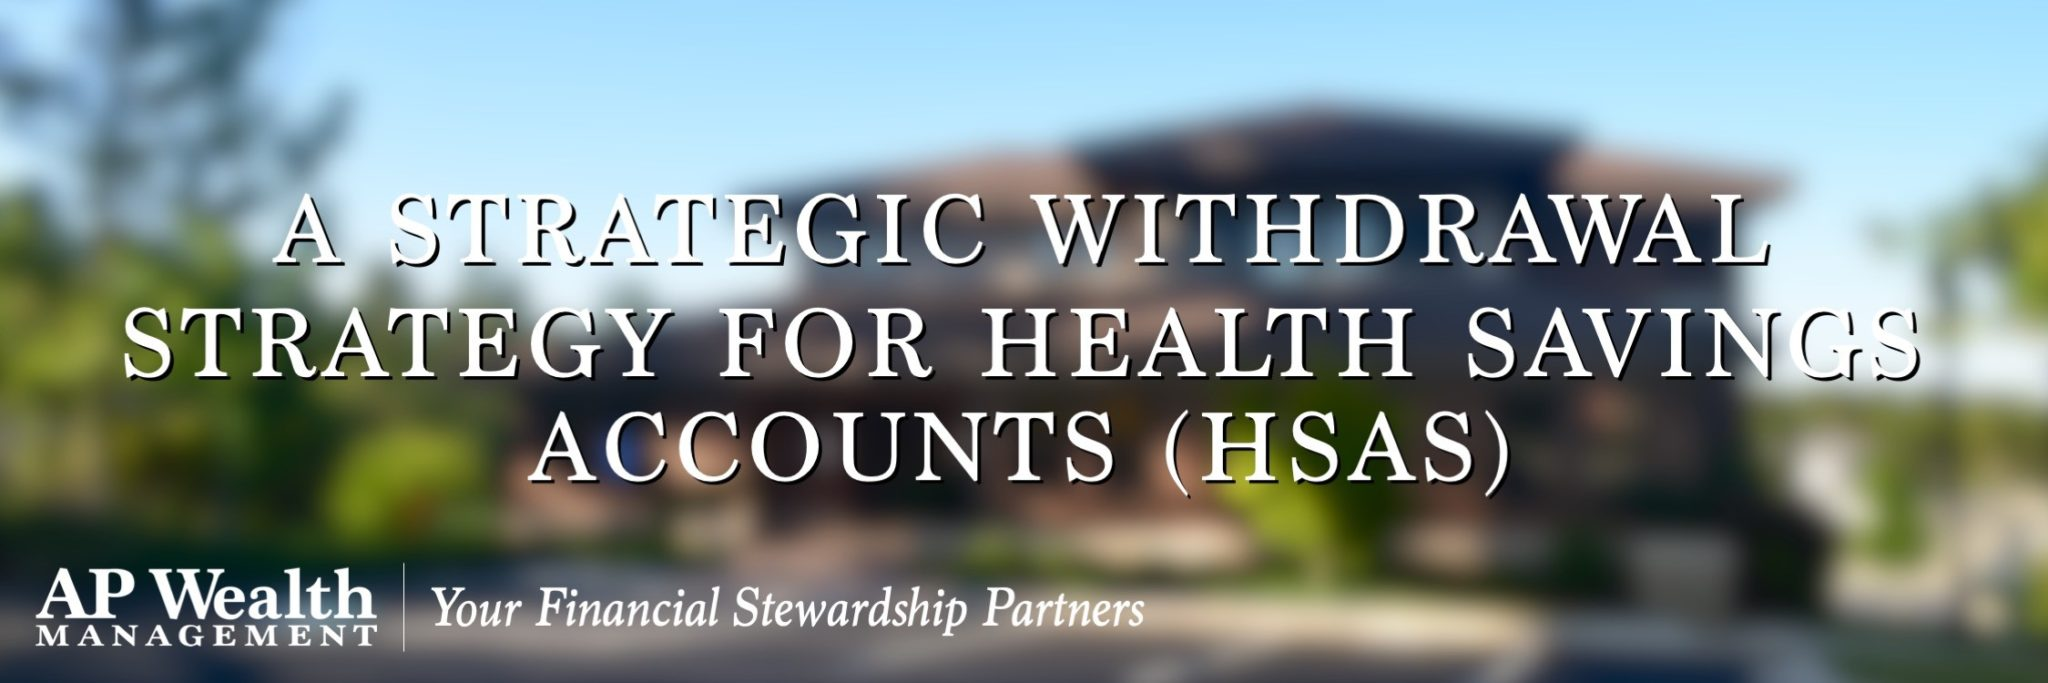 Health Savings Account Withdraw Strategy